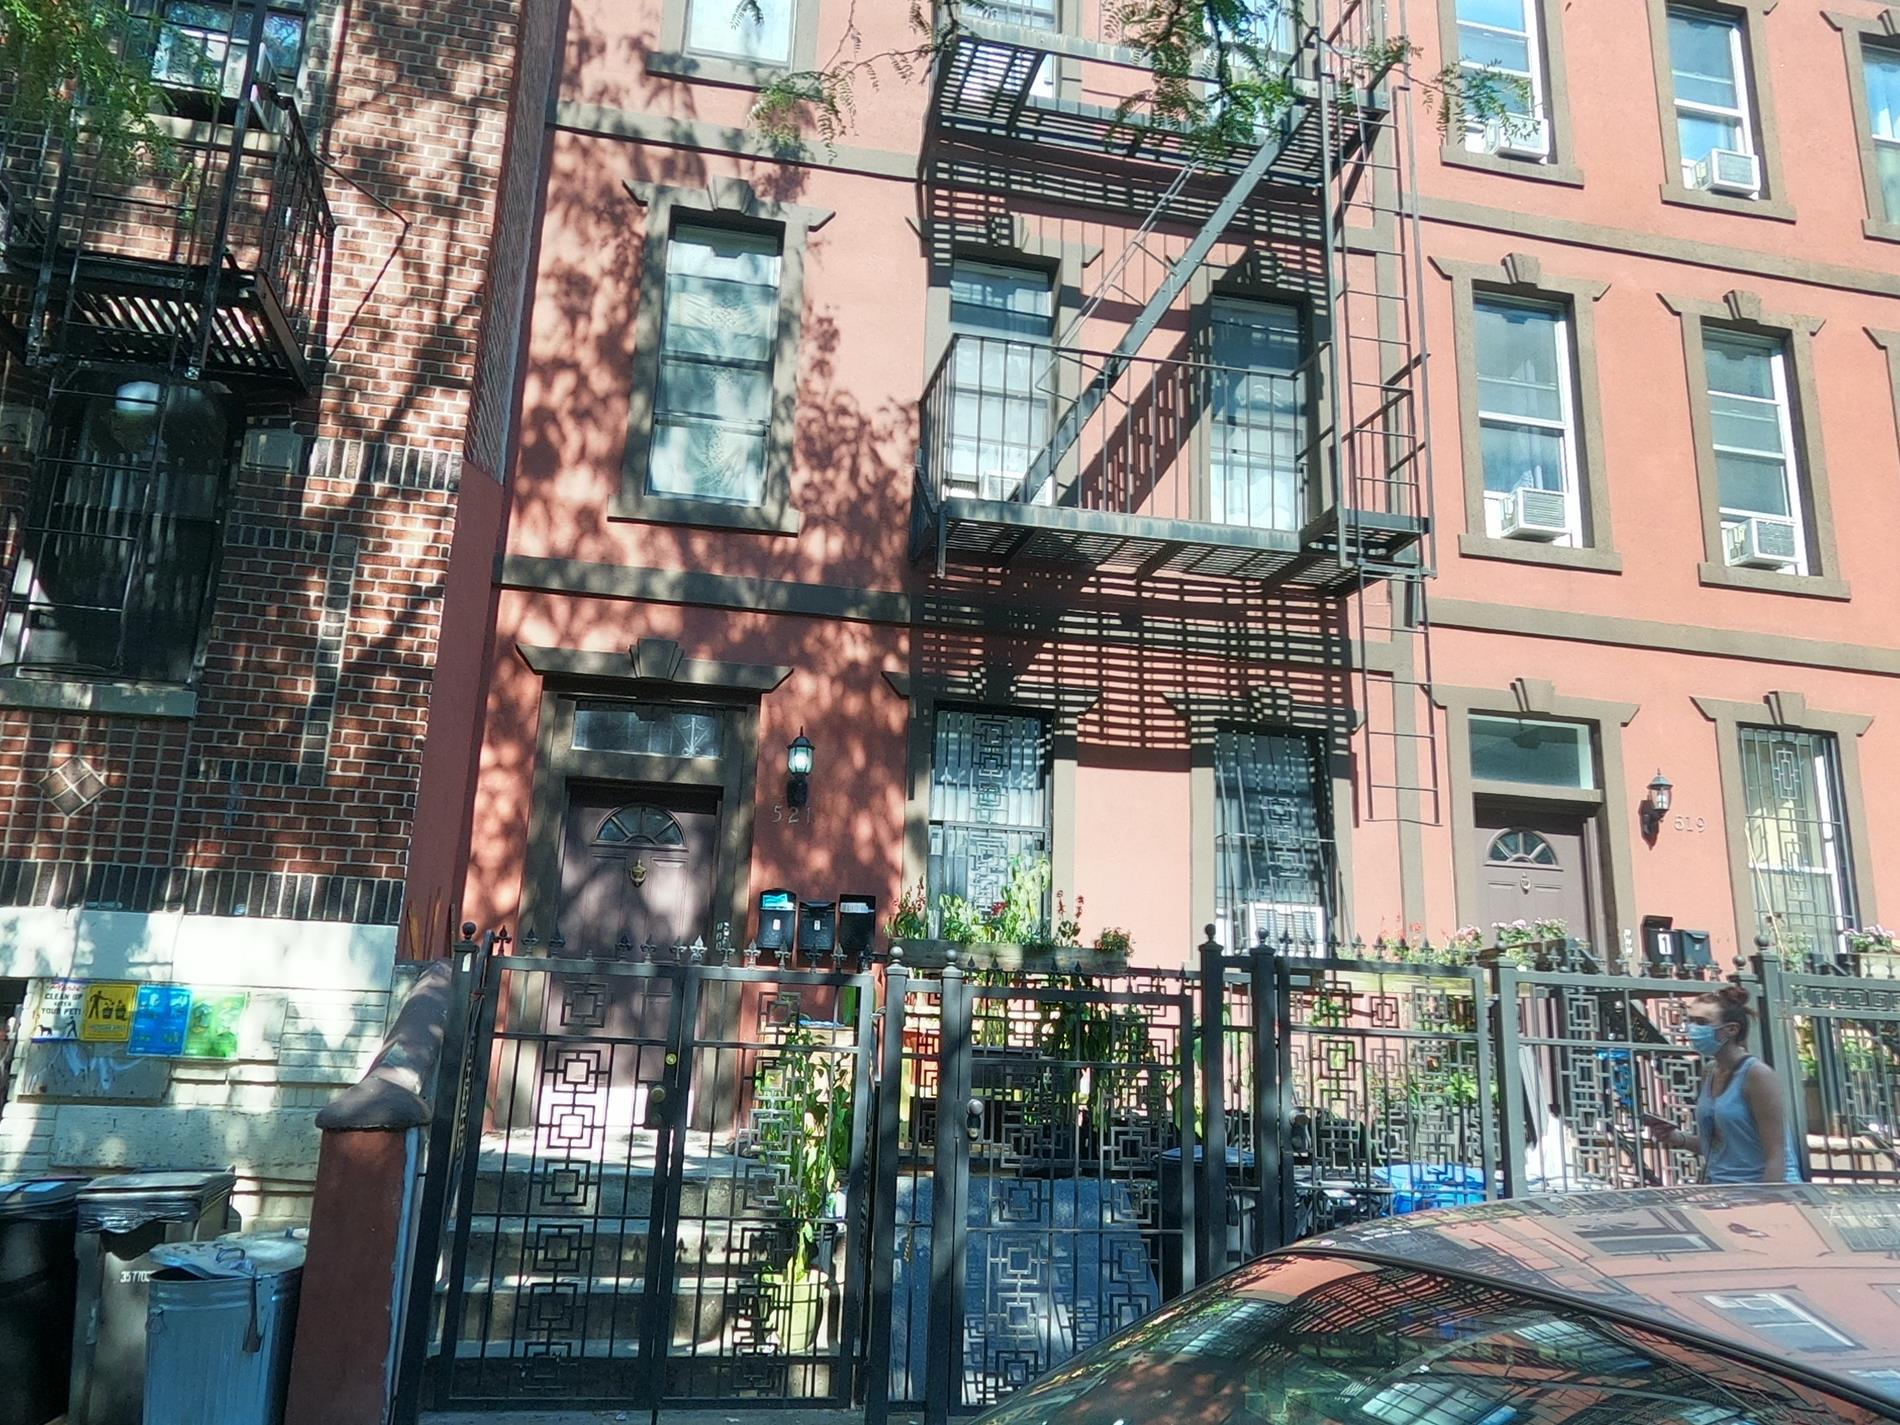 521 West 158th Street Washington Heights New York NY 10032